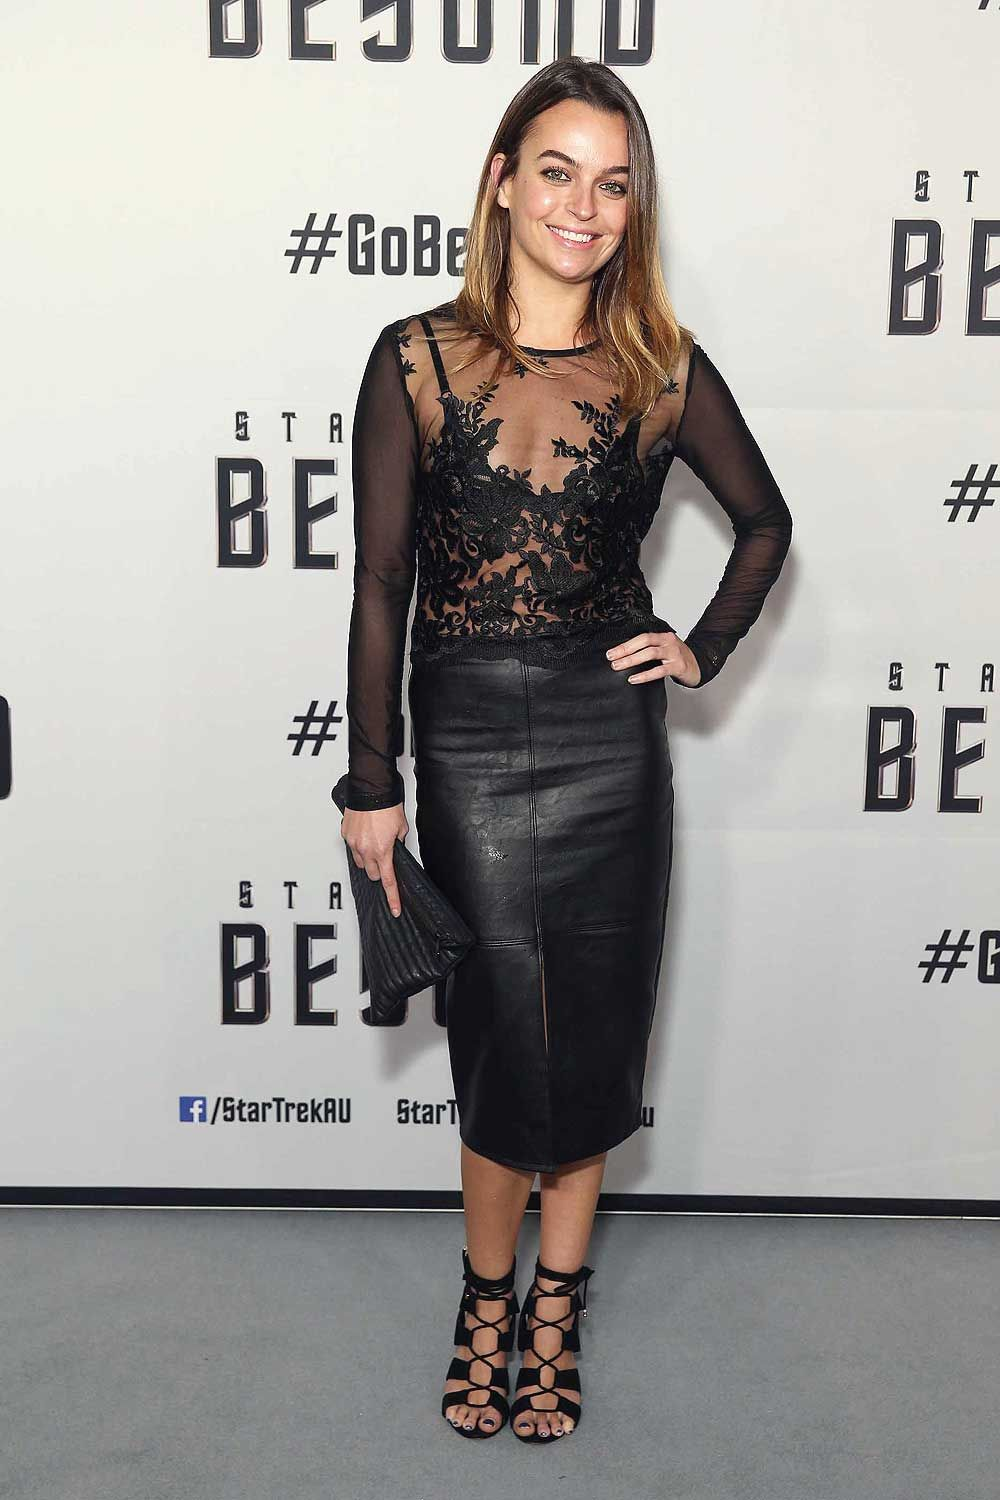 Bianca Brady wearing leather pencil skirt, leather skirt.